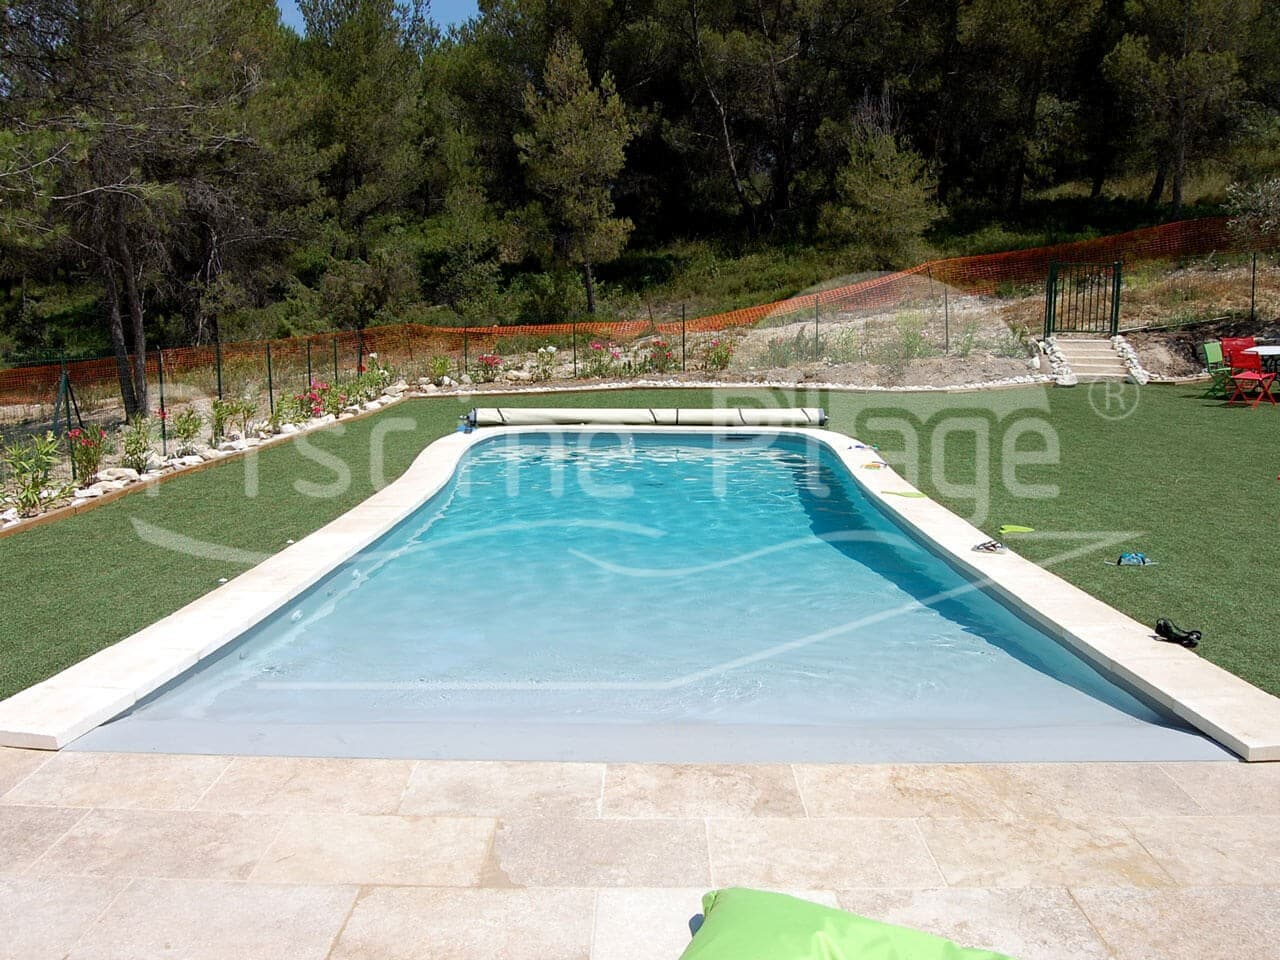 Votre piscine avec plage californienne en paca gr ce for Construction piscine plage